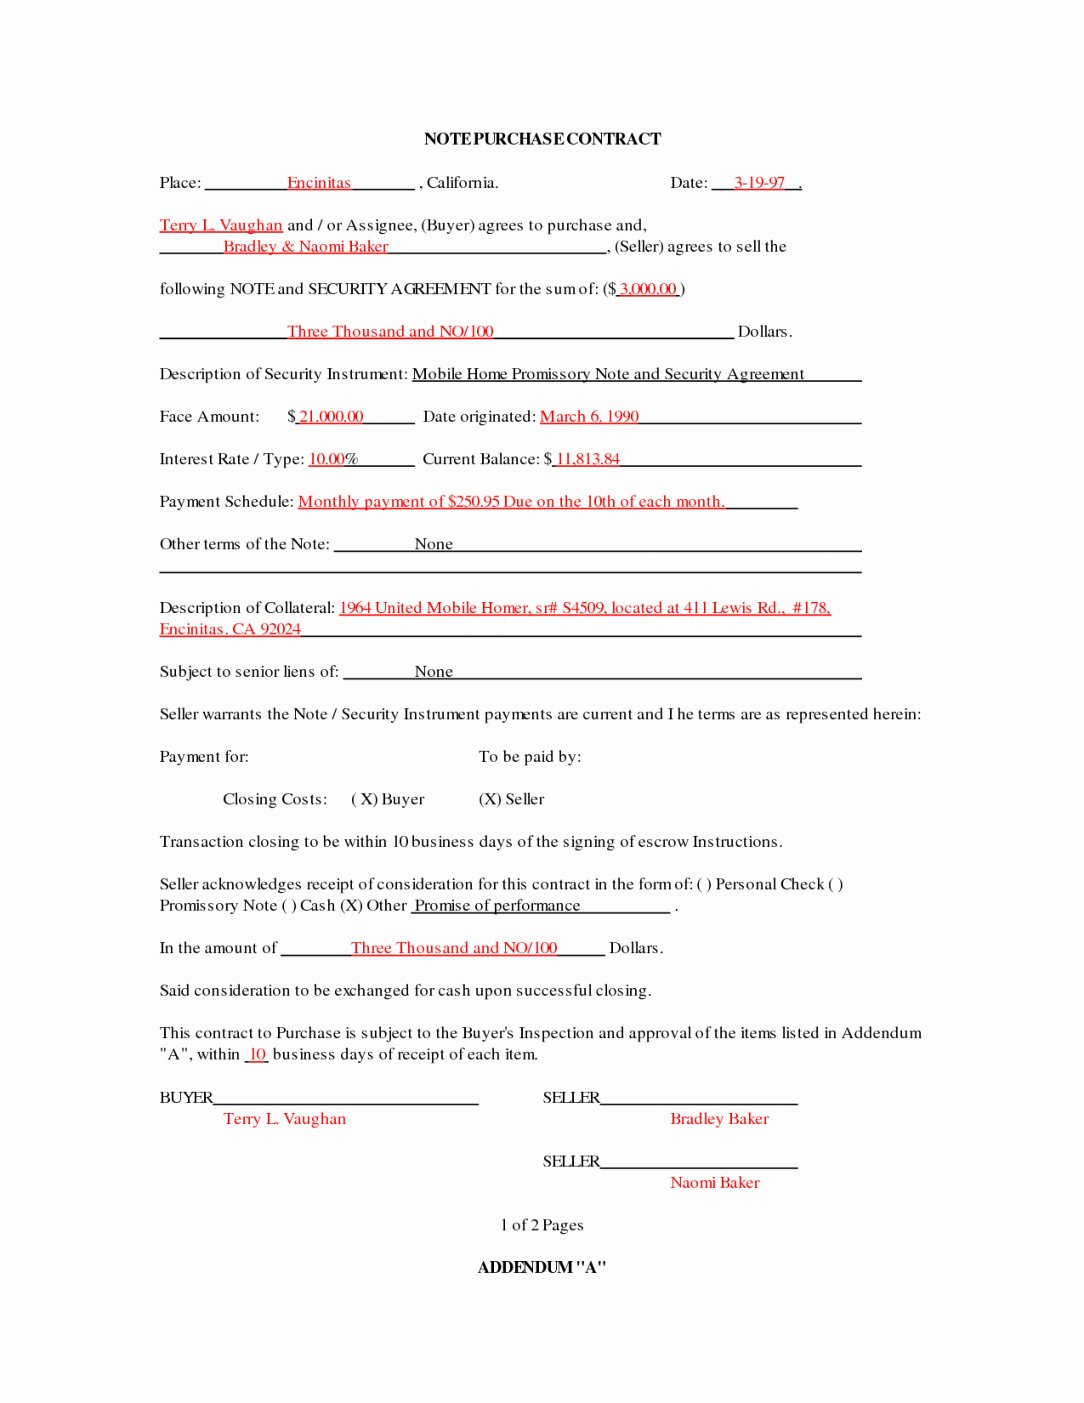 Home Purchase Contract Template New Mobile Home Purchase Agreement